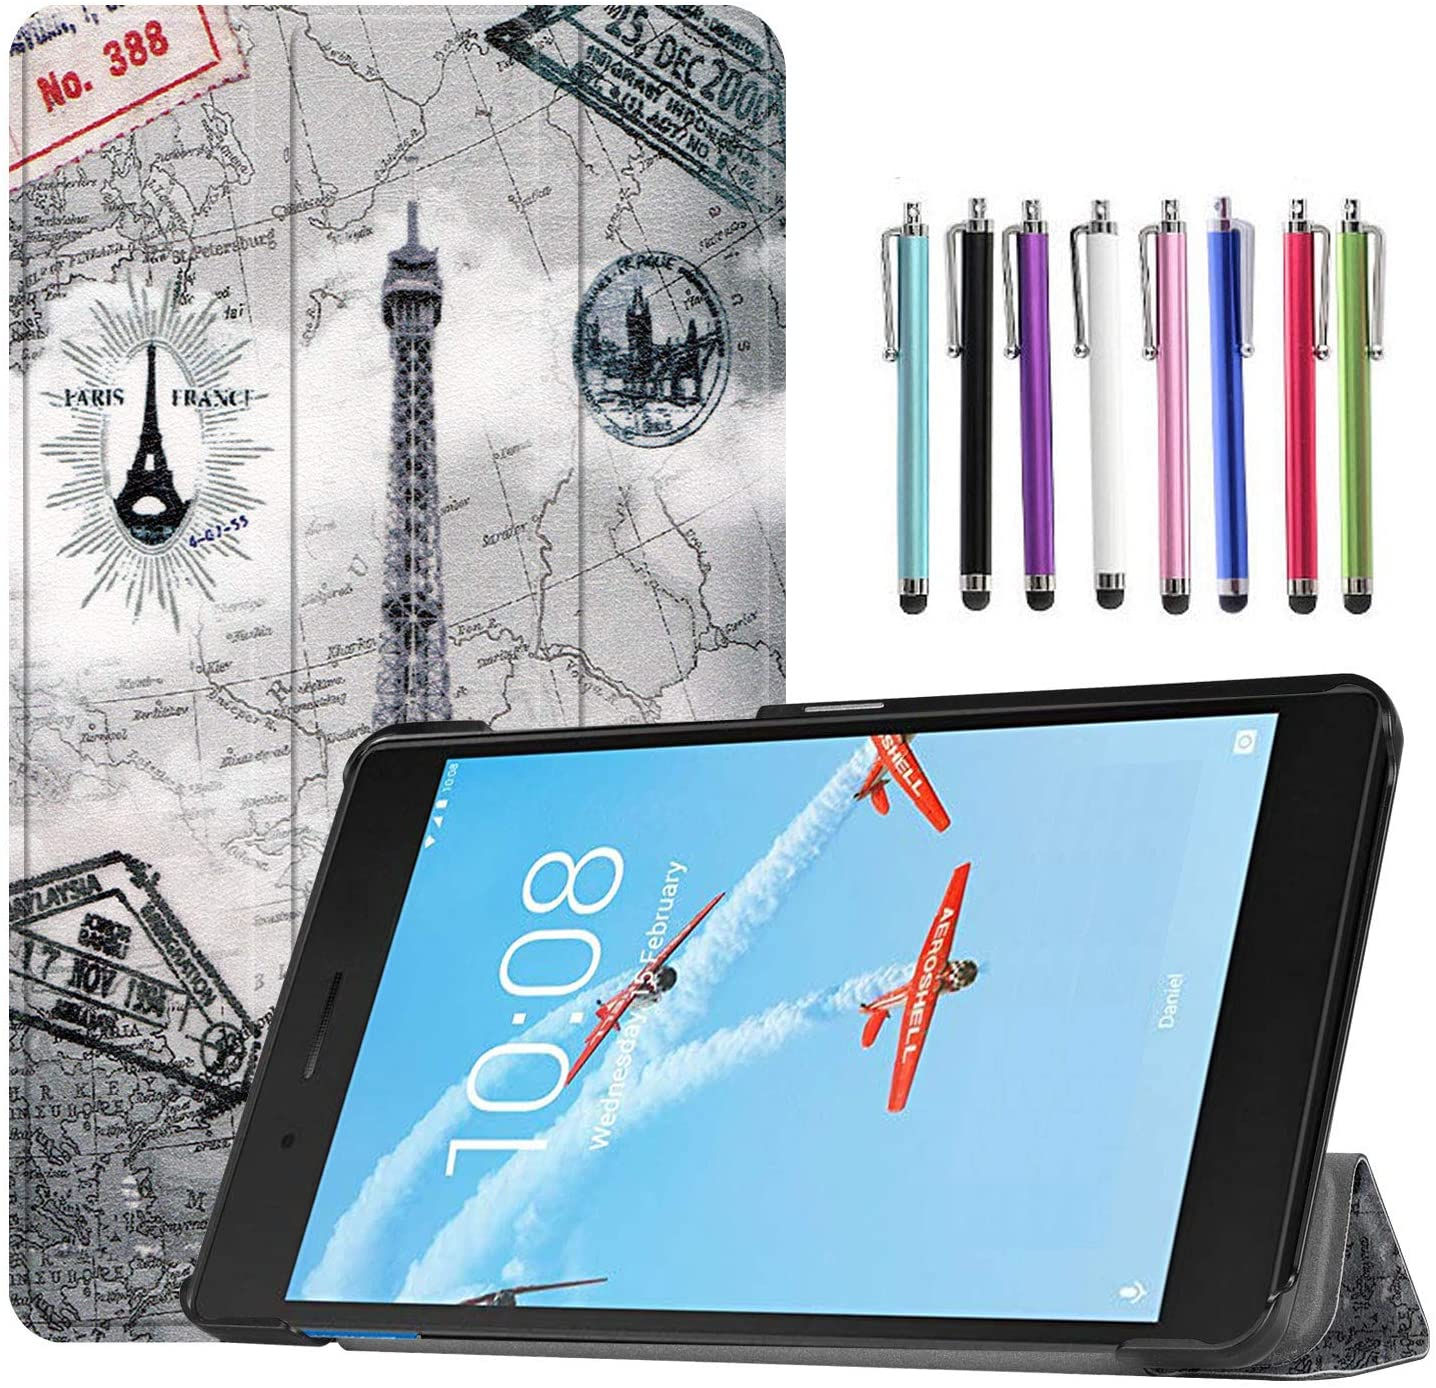 Epicgadget Case for Lenovo Tab E8 (TB-8304F), Slim Lightweight Tri fold Stand Cover Case for Lenovo Tablet 2018 Tab E 8 8 Inch Display (Eiffel Tower)